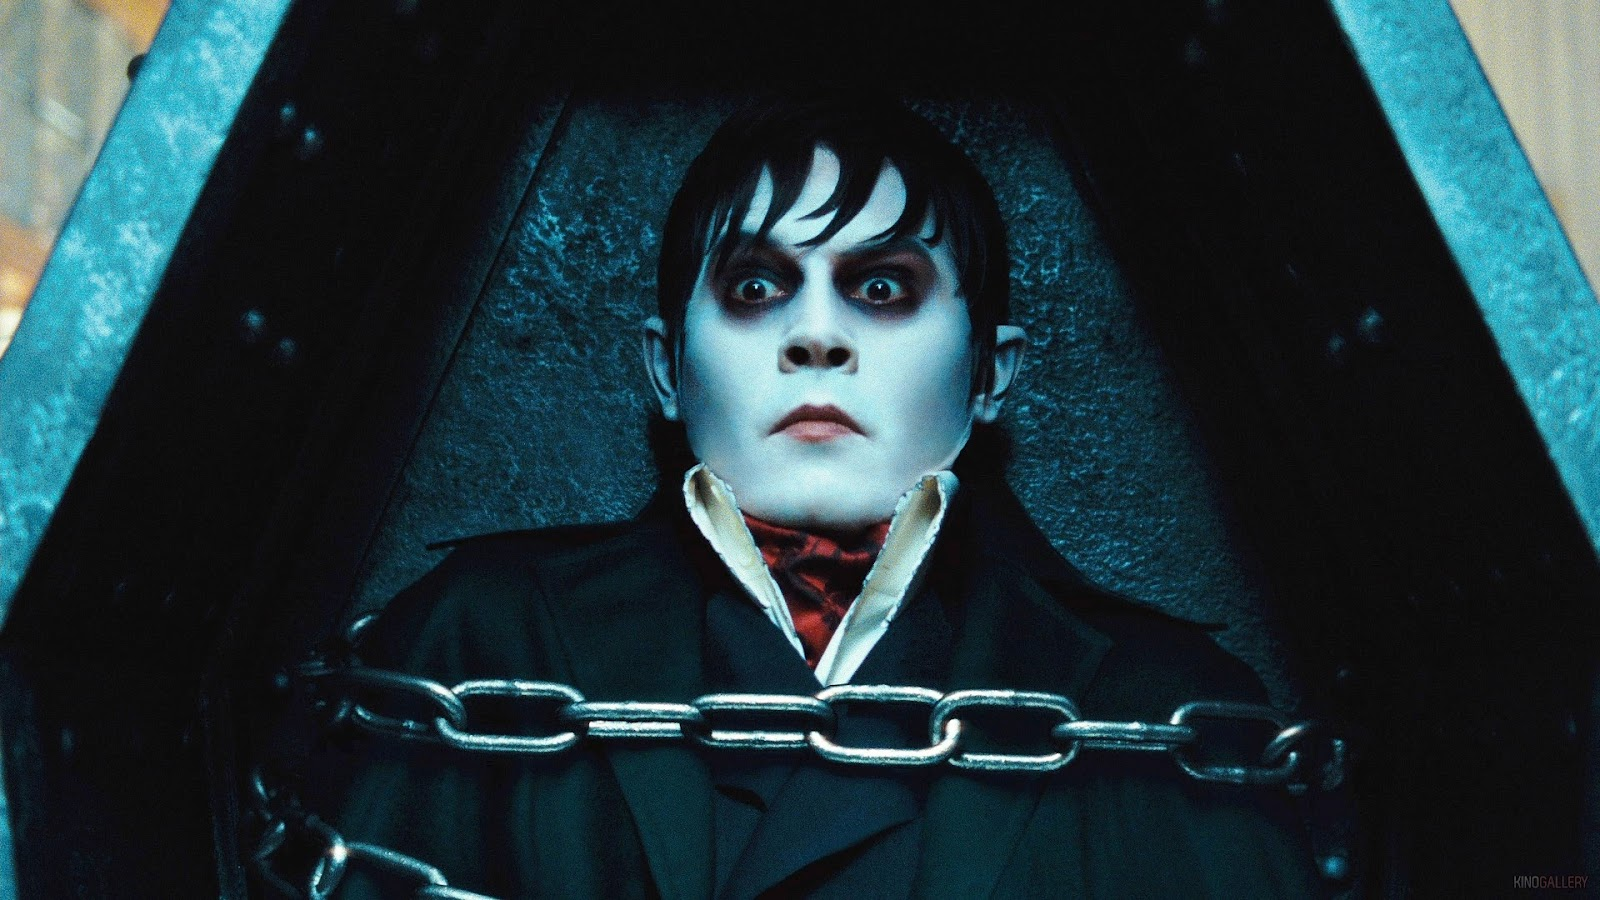 http://3.bp.blogspot.com/-sghhr8o8FYQ/T58Sls6cz3I/AAAAAAAABfA/5jcgTZGFA8Q/s1600/Vampire_Johnny_Depp_in_Grave_Dark_Shadows_Movie_HD_Wallpaper.jpg